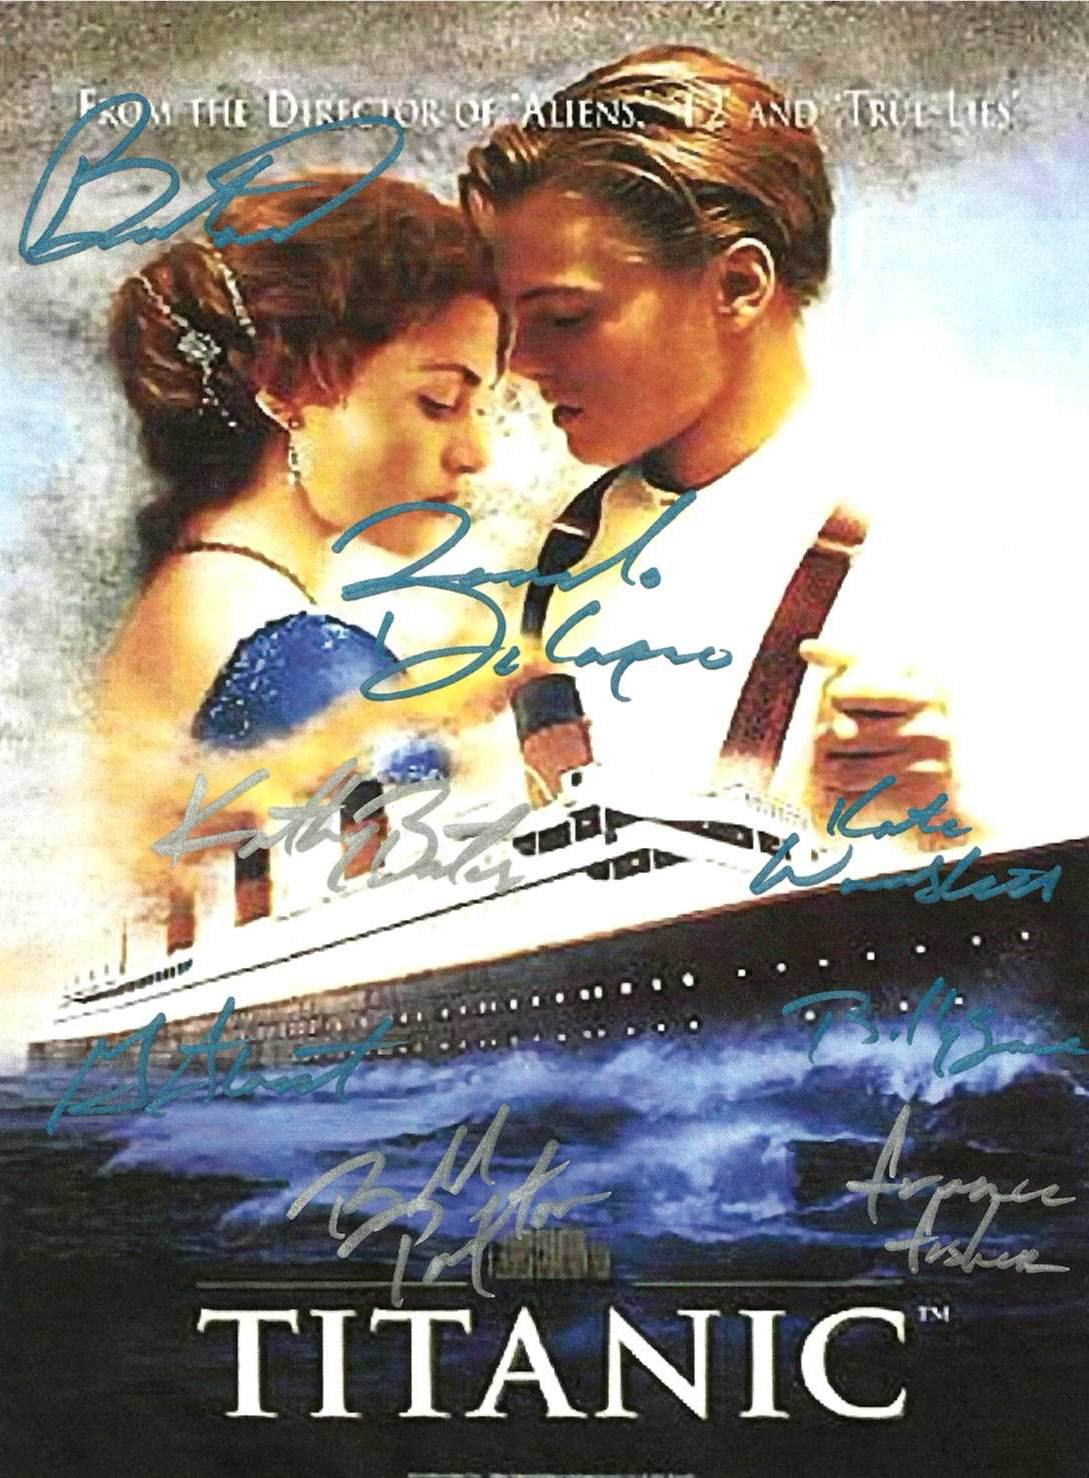 Signed titanic movie poster